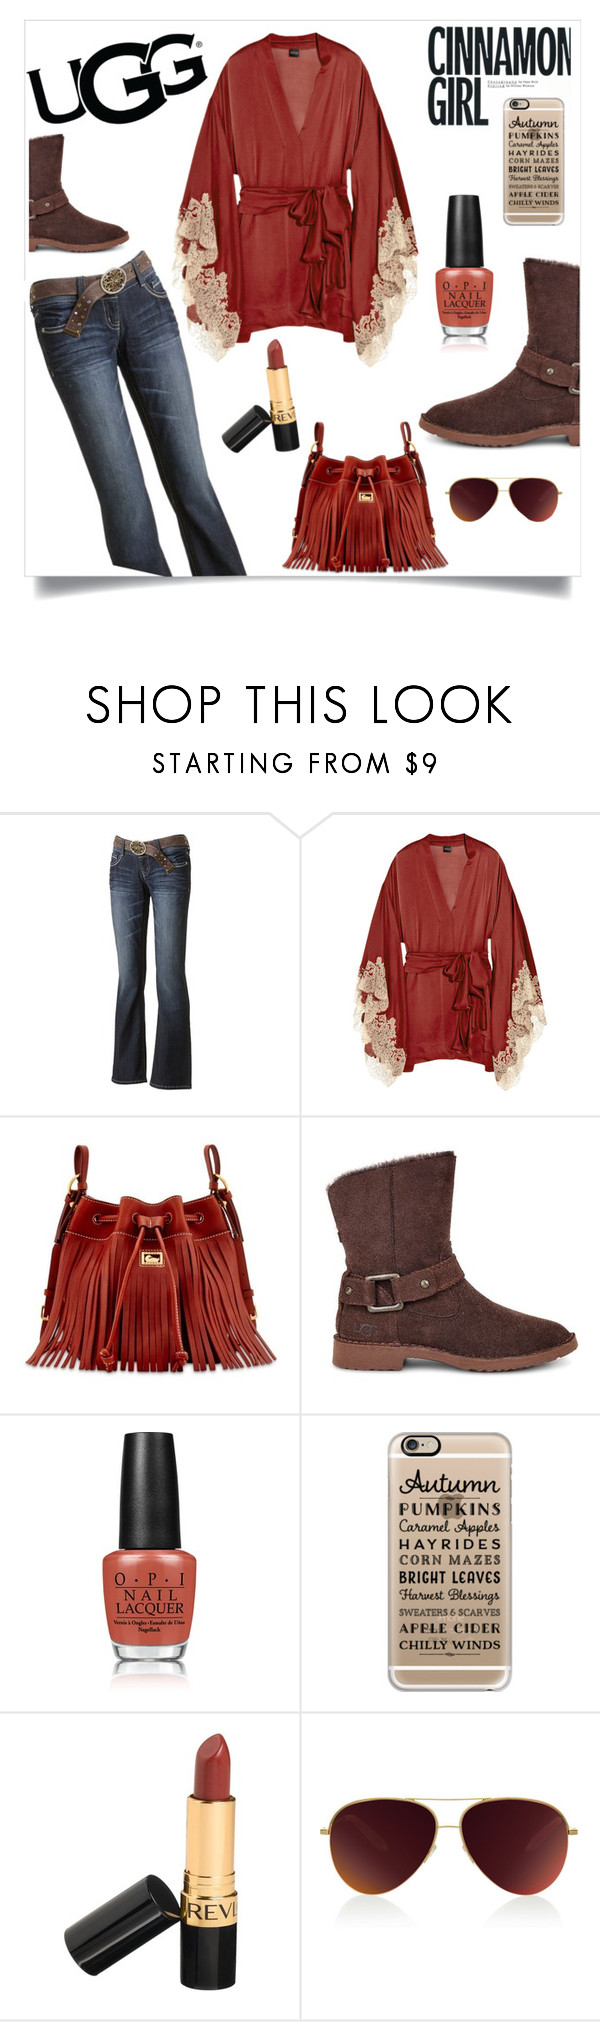 """""""The New Classics With UGG: Contest Entry"""" by im-karla-with-a-k ❤ liked on Polyvore featuring Wallflower, Carine Gilson, Dooney & Bourke, UGG, OPI, Casetify, Revlon, Victoria Beckham and ugg"""